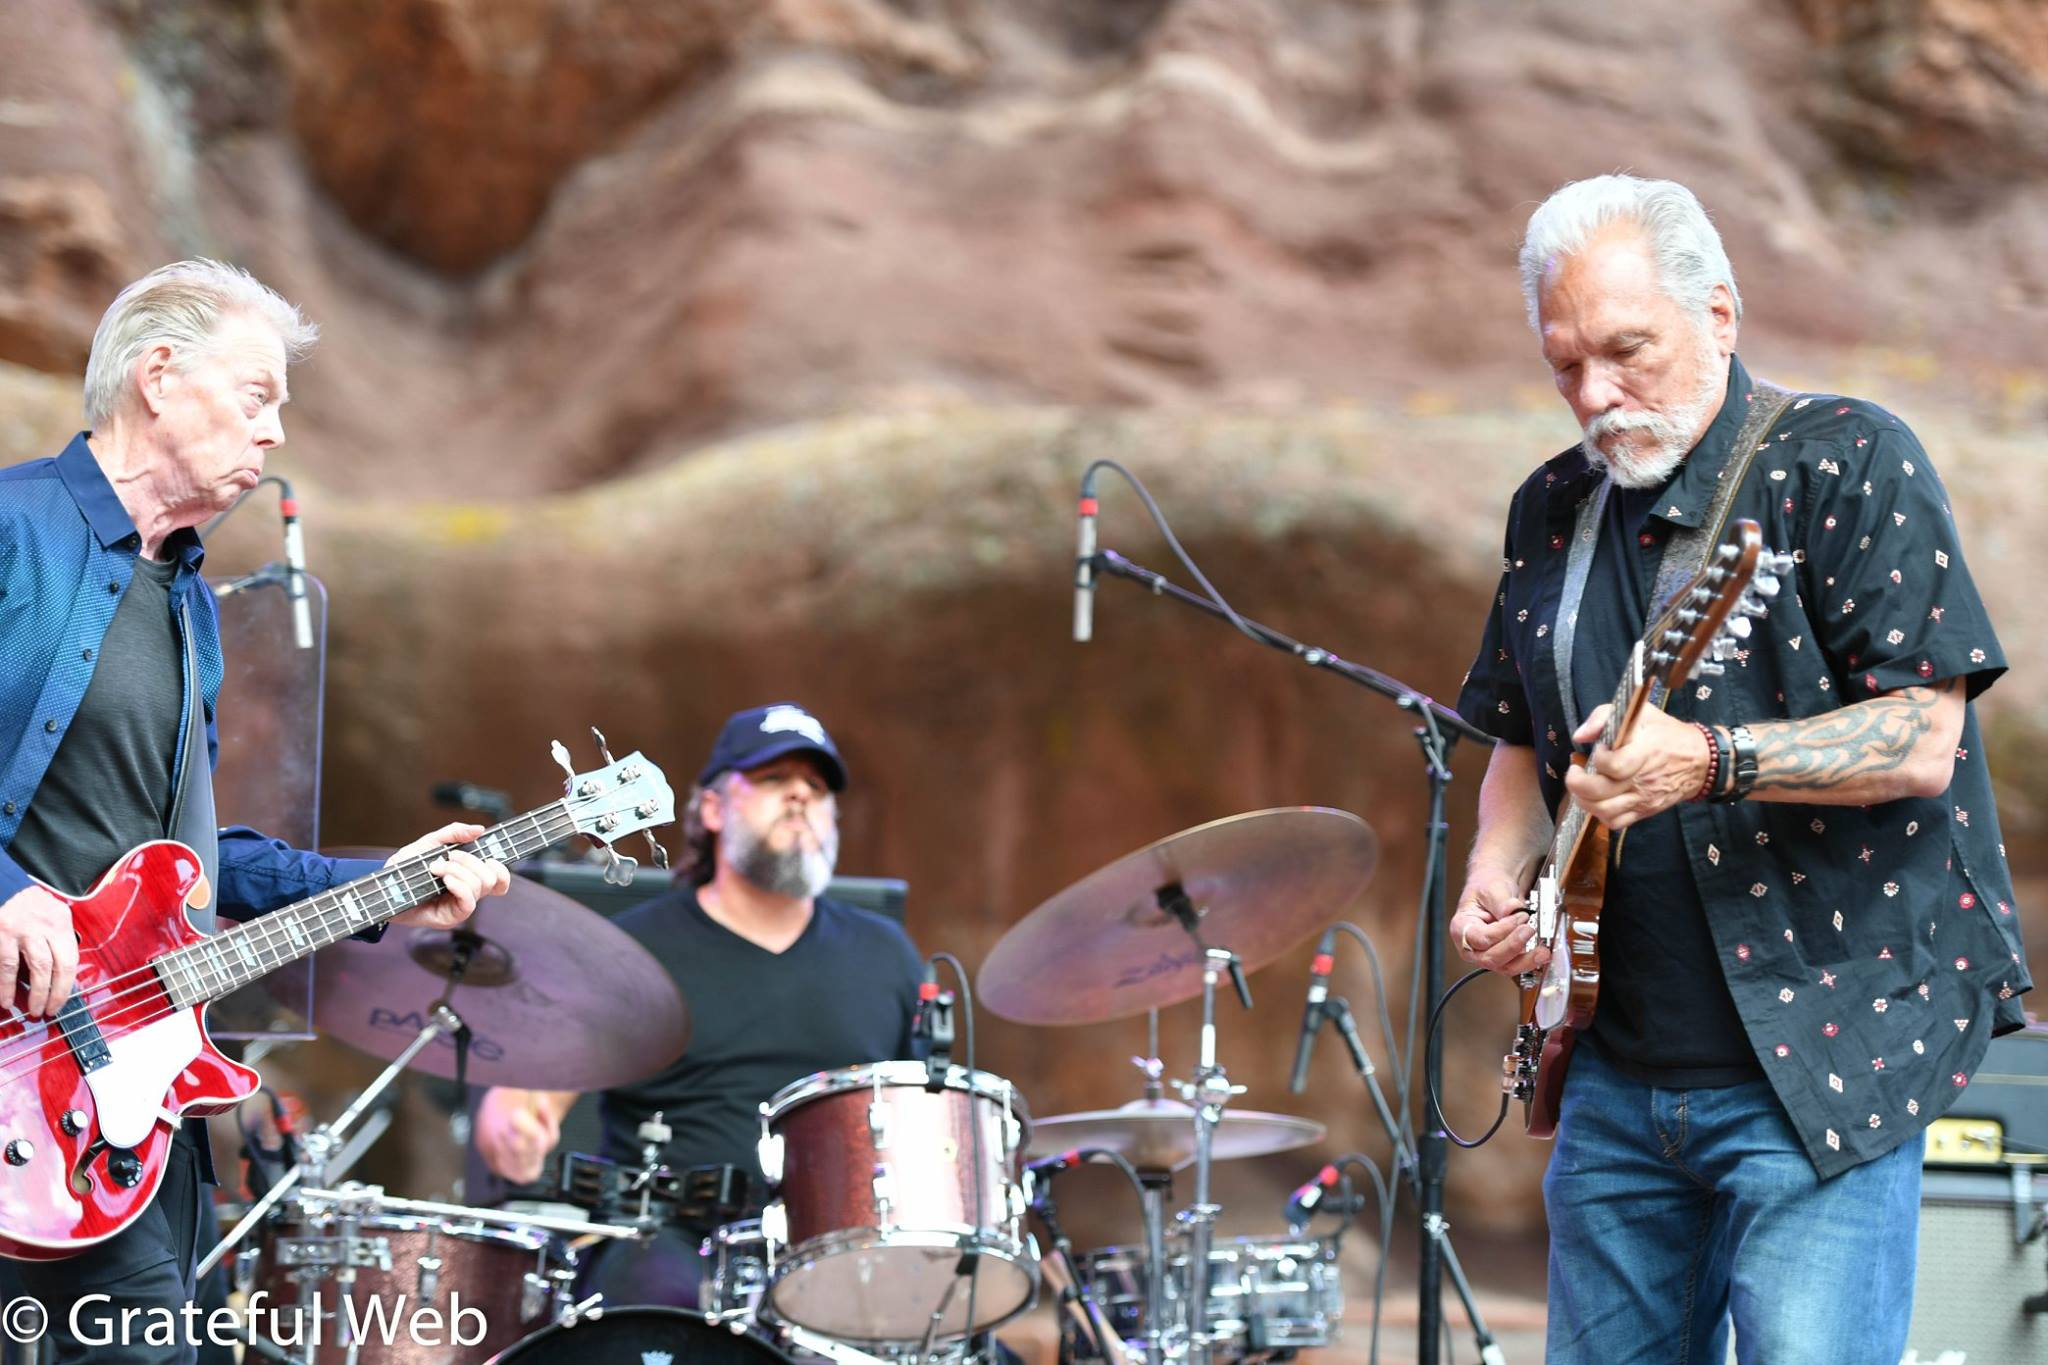 Hot Tuna will open up at Red Rocks this year!